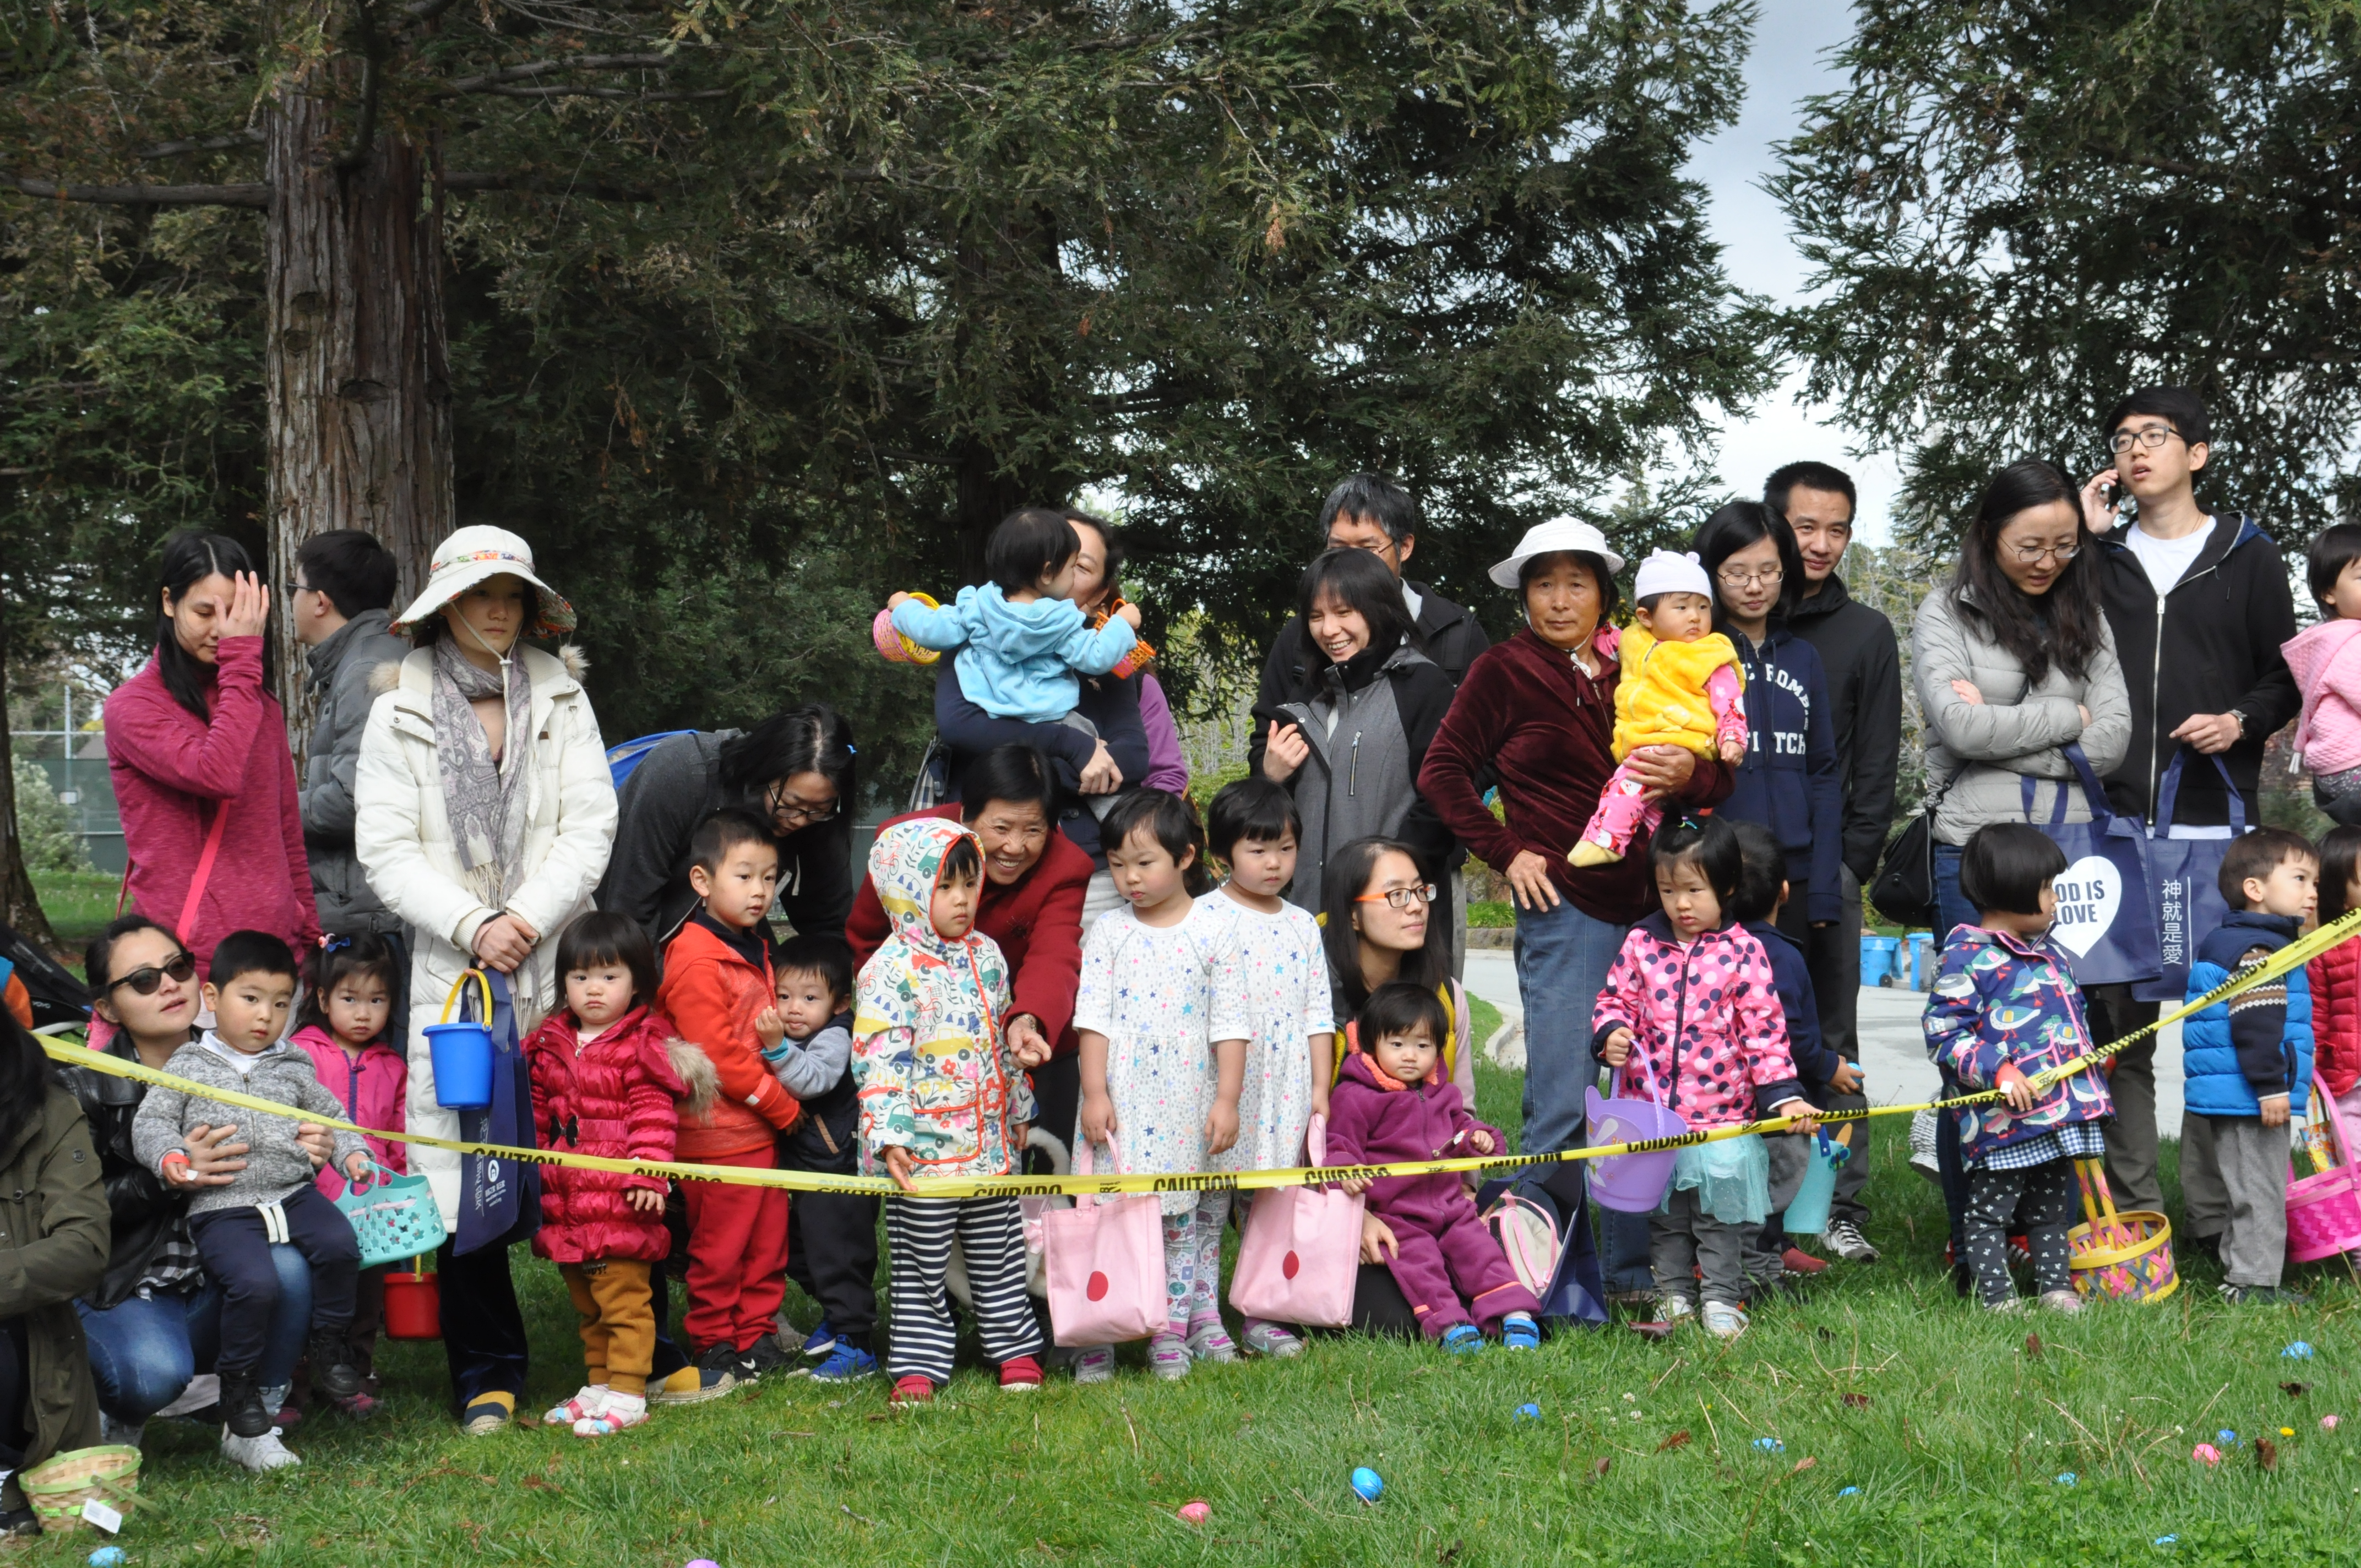 Annual egg hunt at Memorial Park